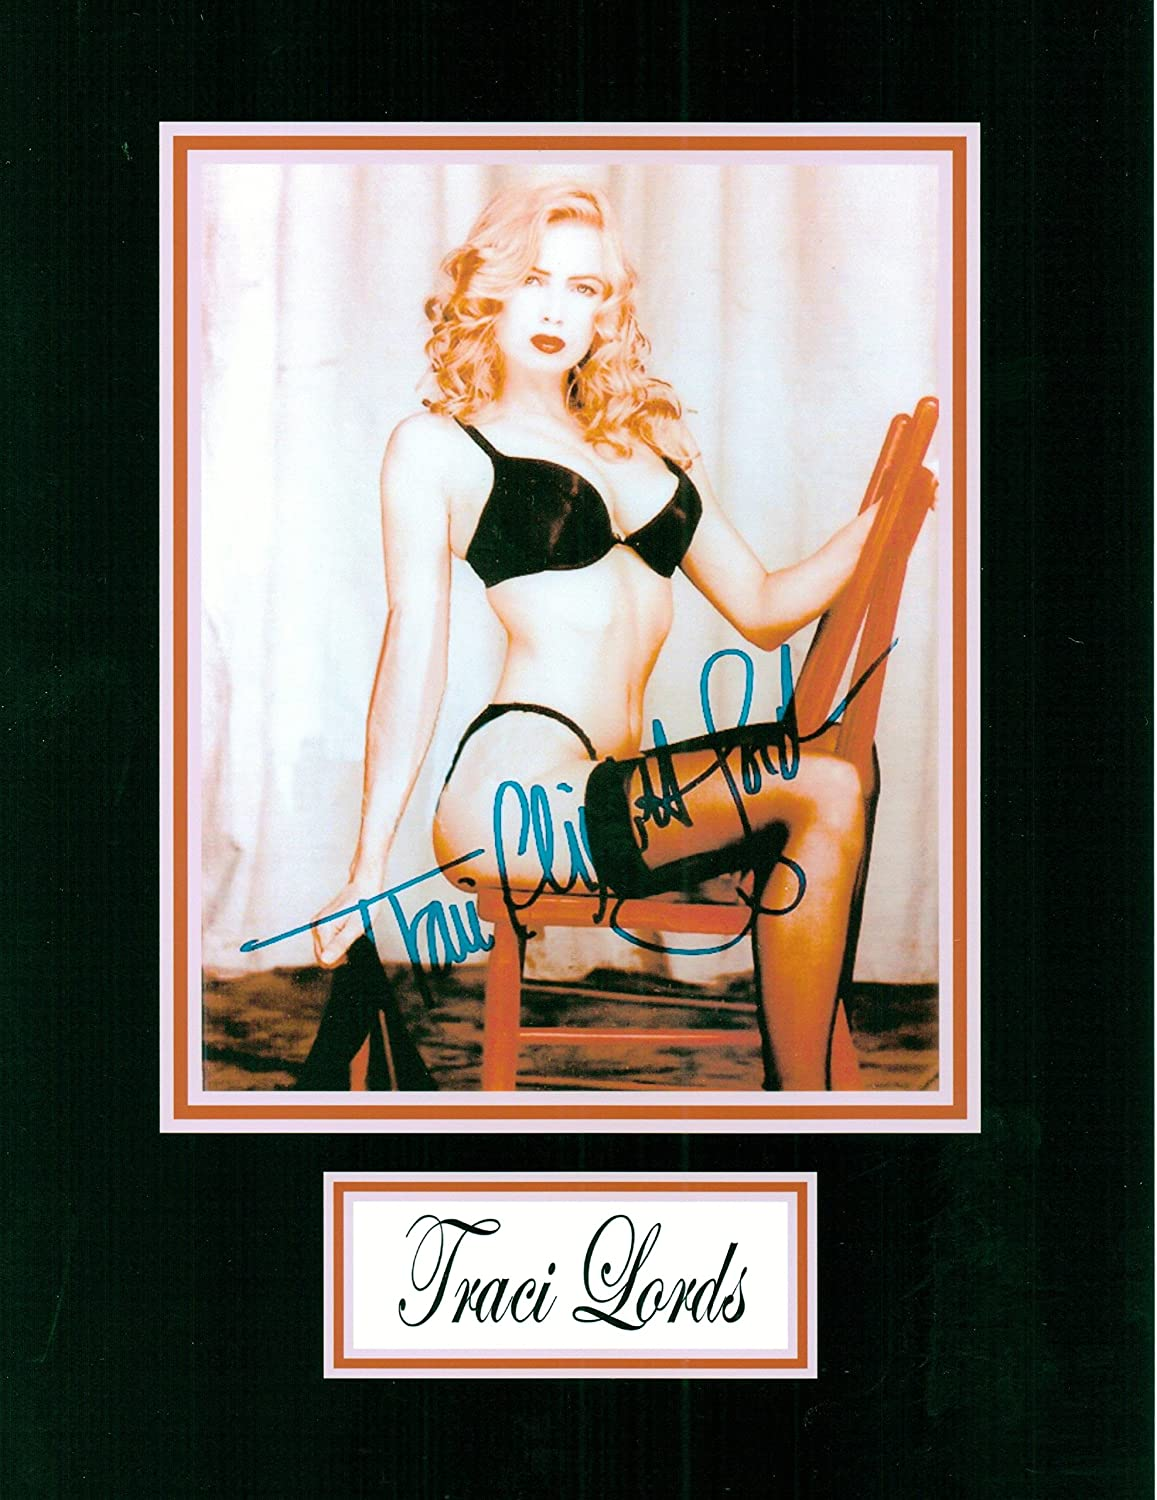 Kirkland Traci Lords 8 X 10 Autograph Posed Photo on Glossy Photo Paper